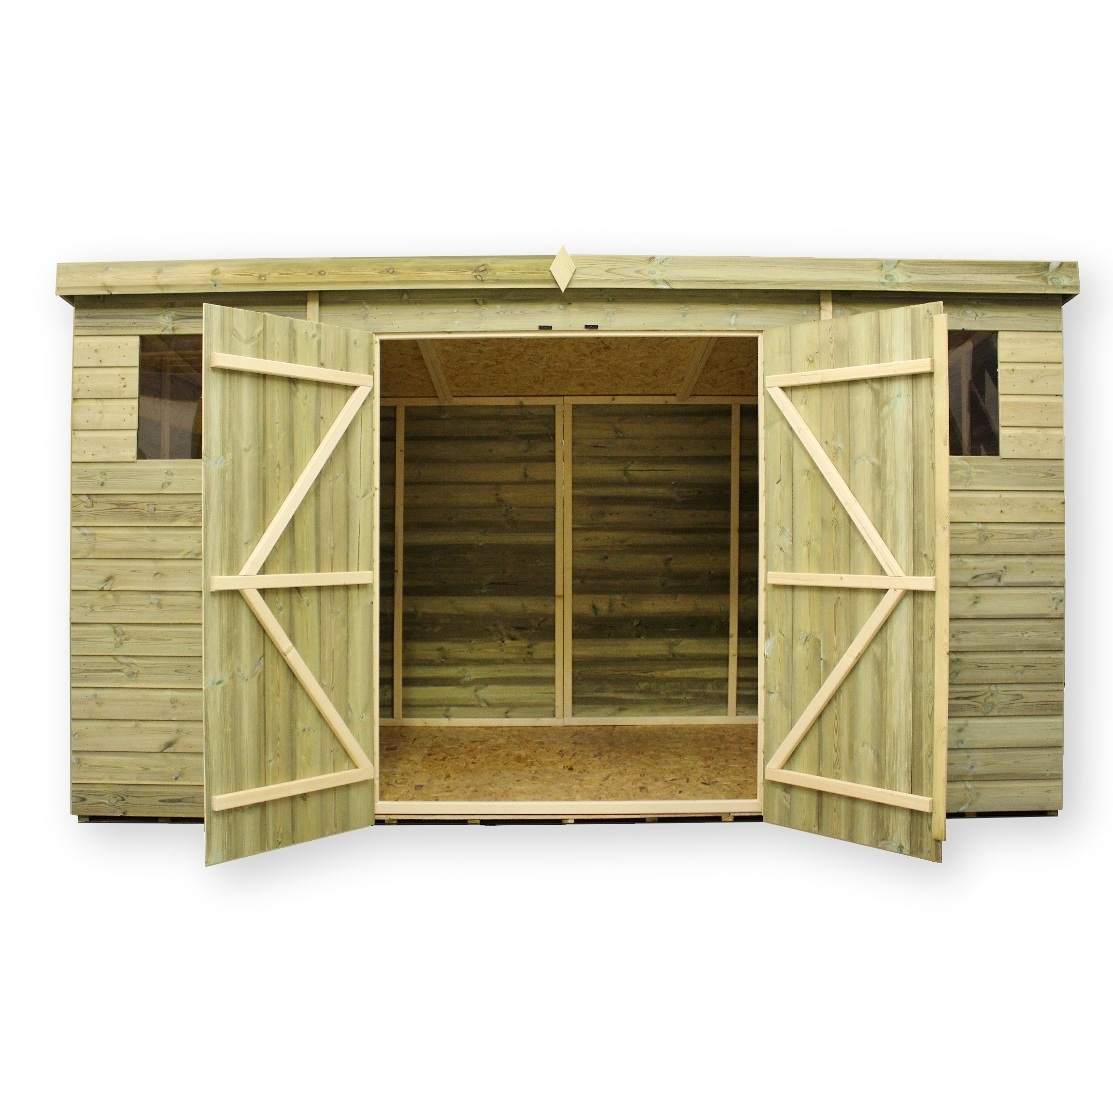 10 x 8 pent shed plans using pallets for flooring plan shed for Double door shed plans